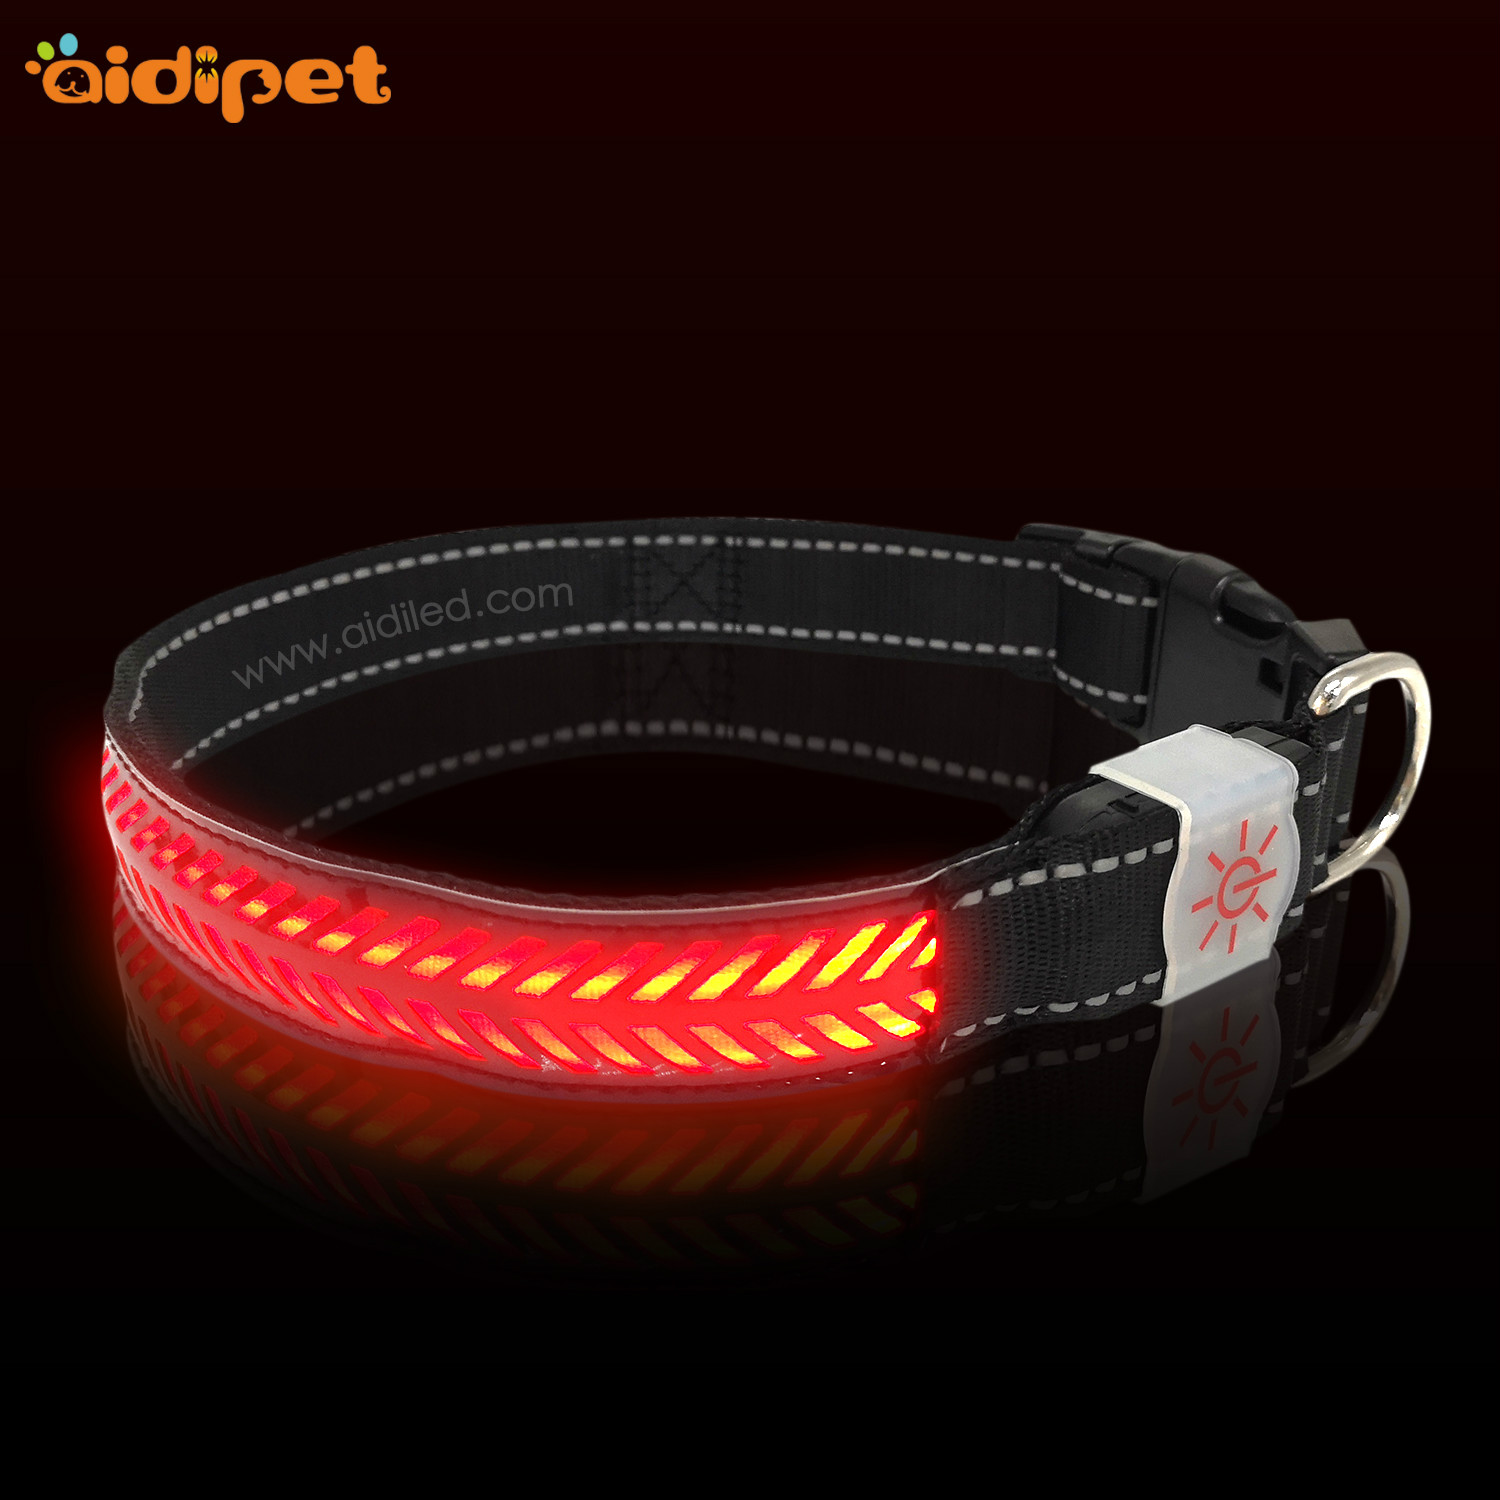 AIDI-Professional Rechargeable Lighted Dog Collars Light Up Dog Collars-7